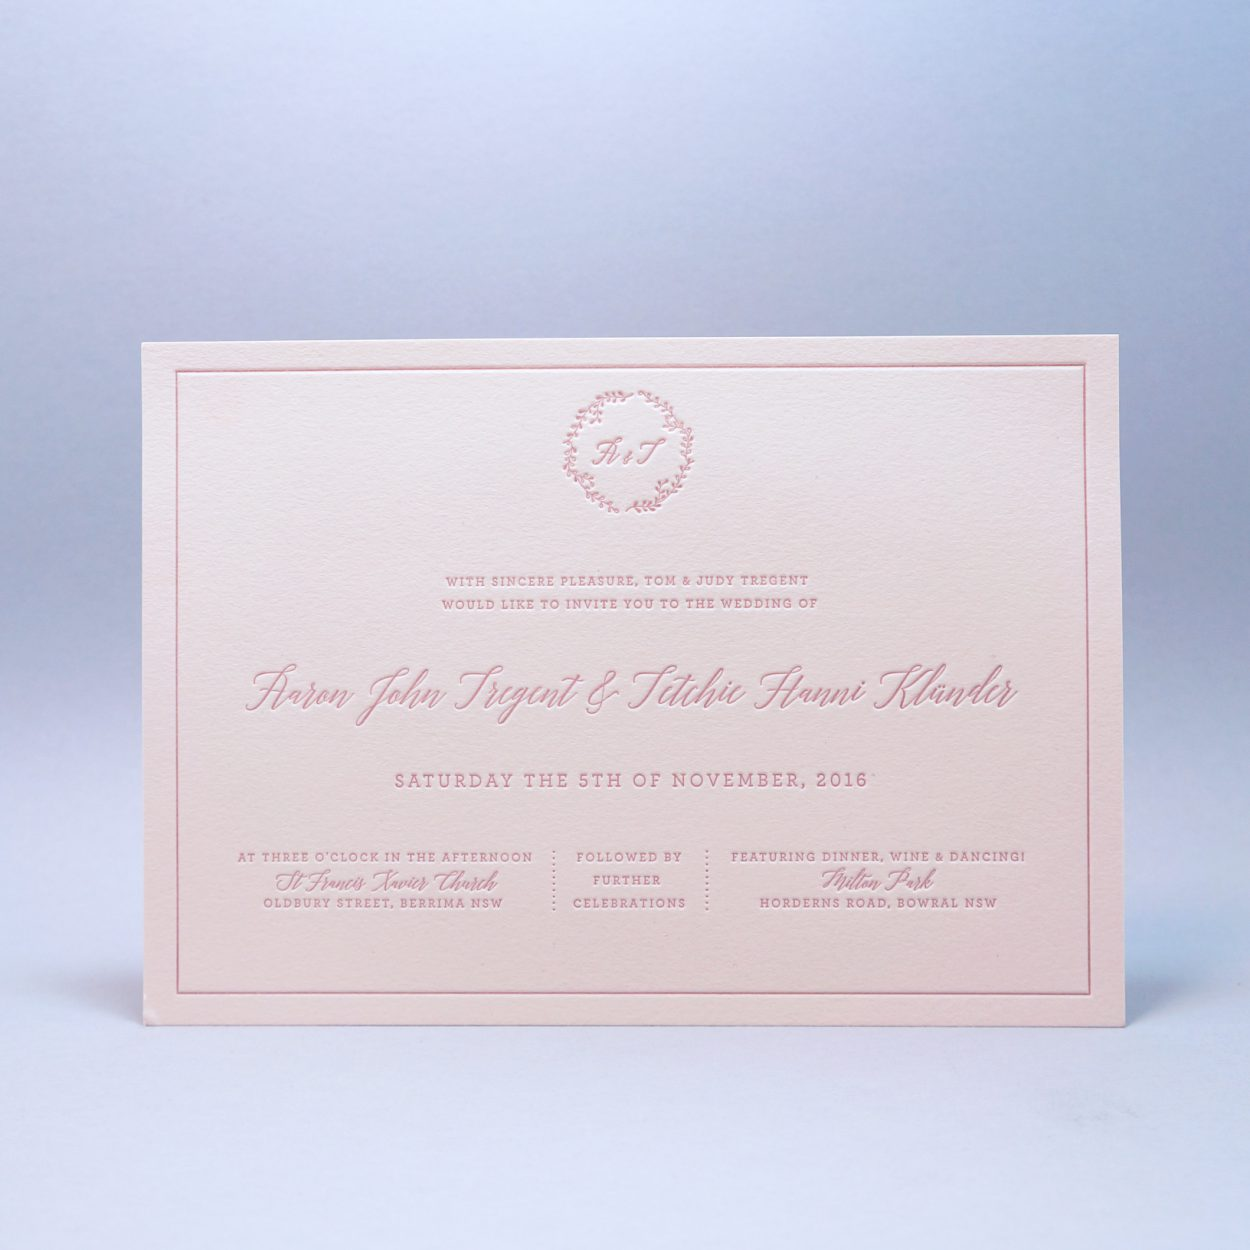 letterpress-invitations-classic-elegant-colorplan-pink-wreath